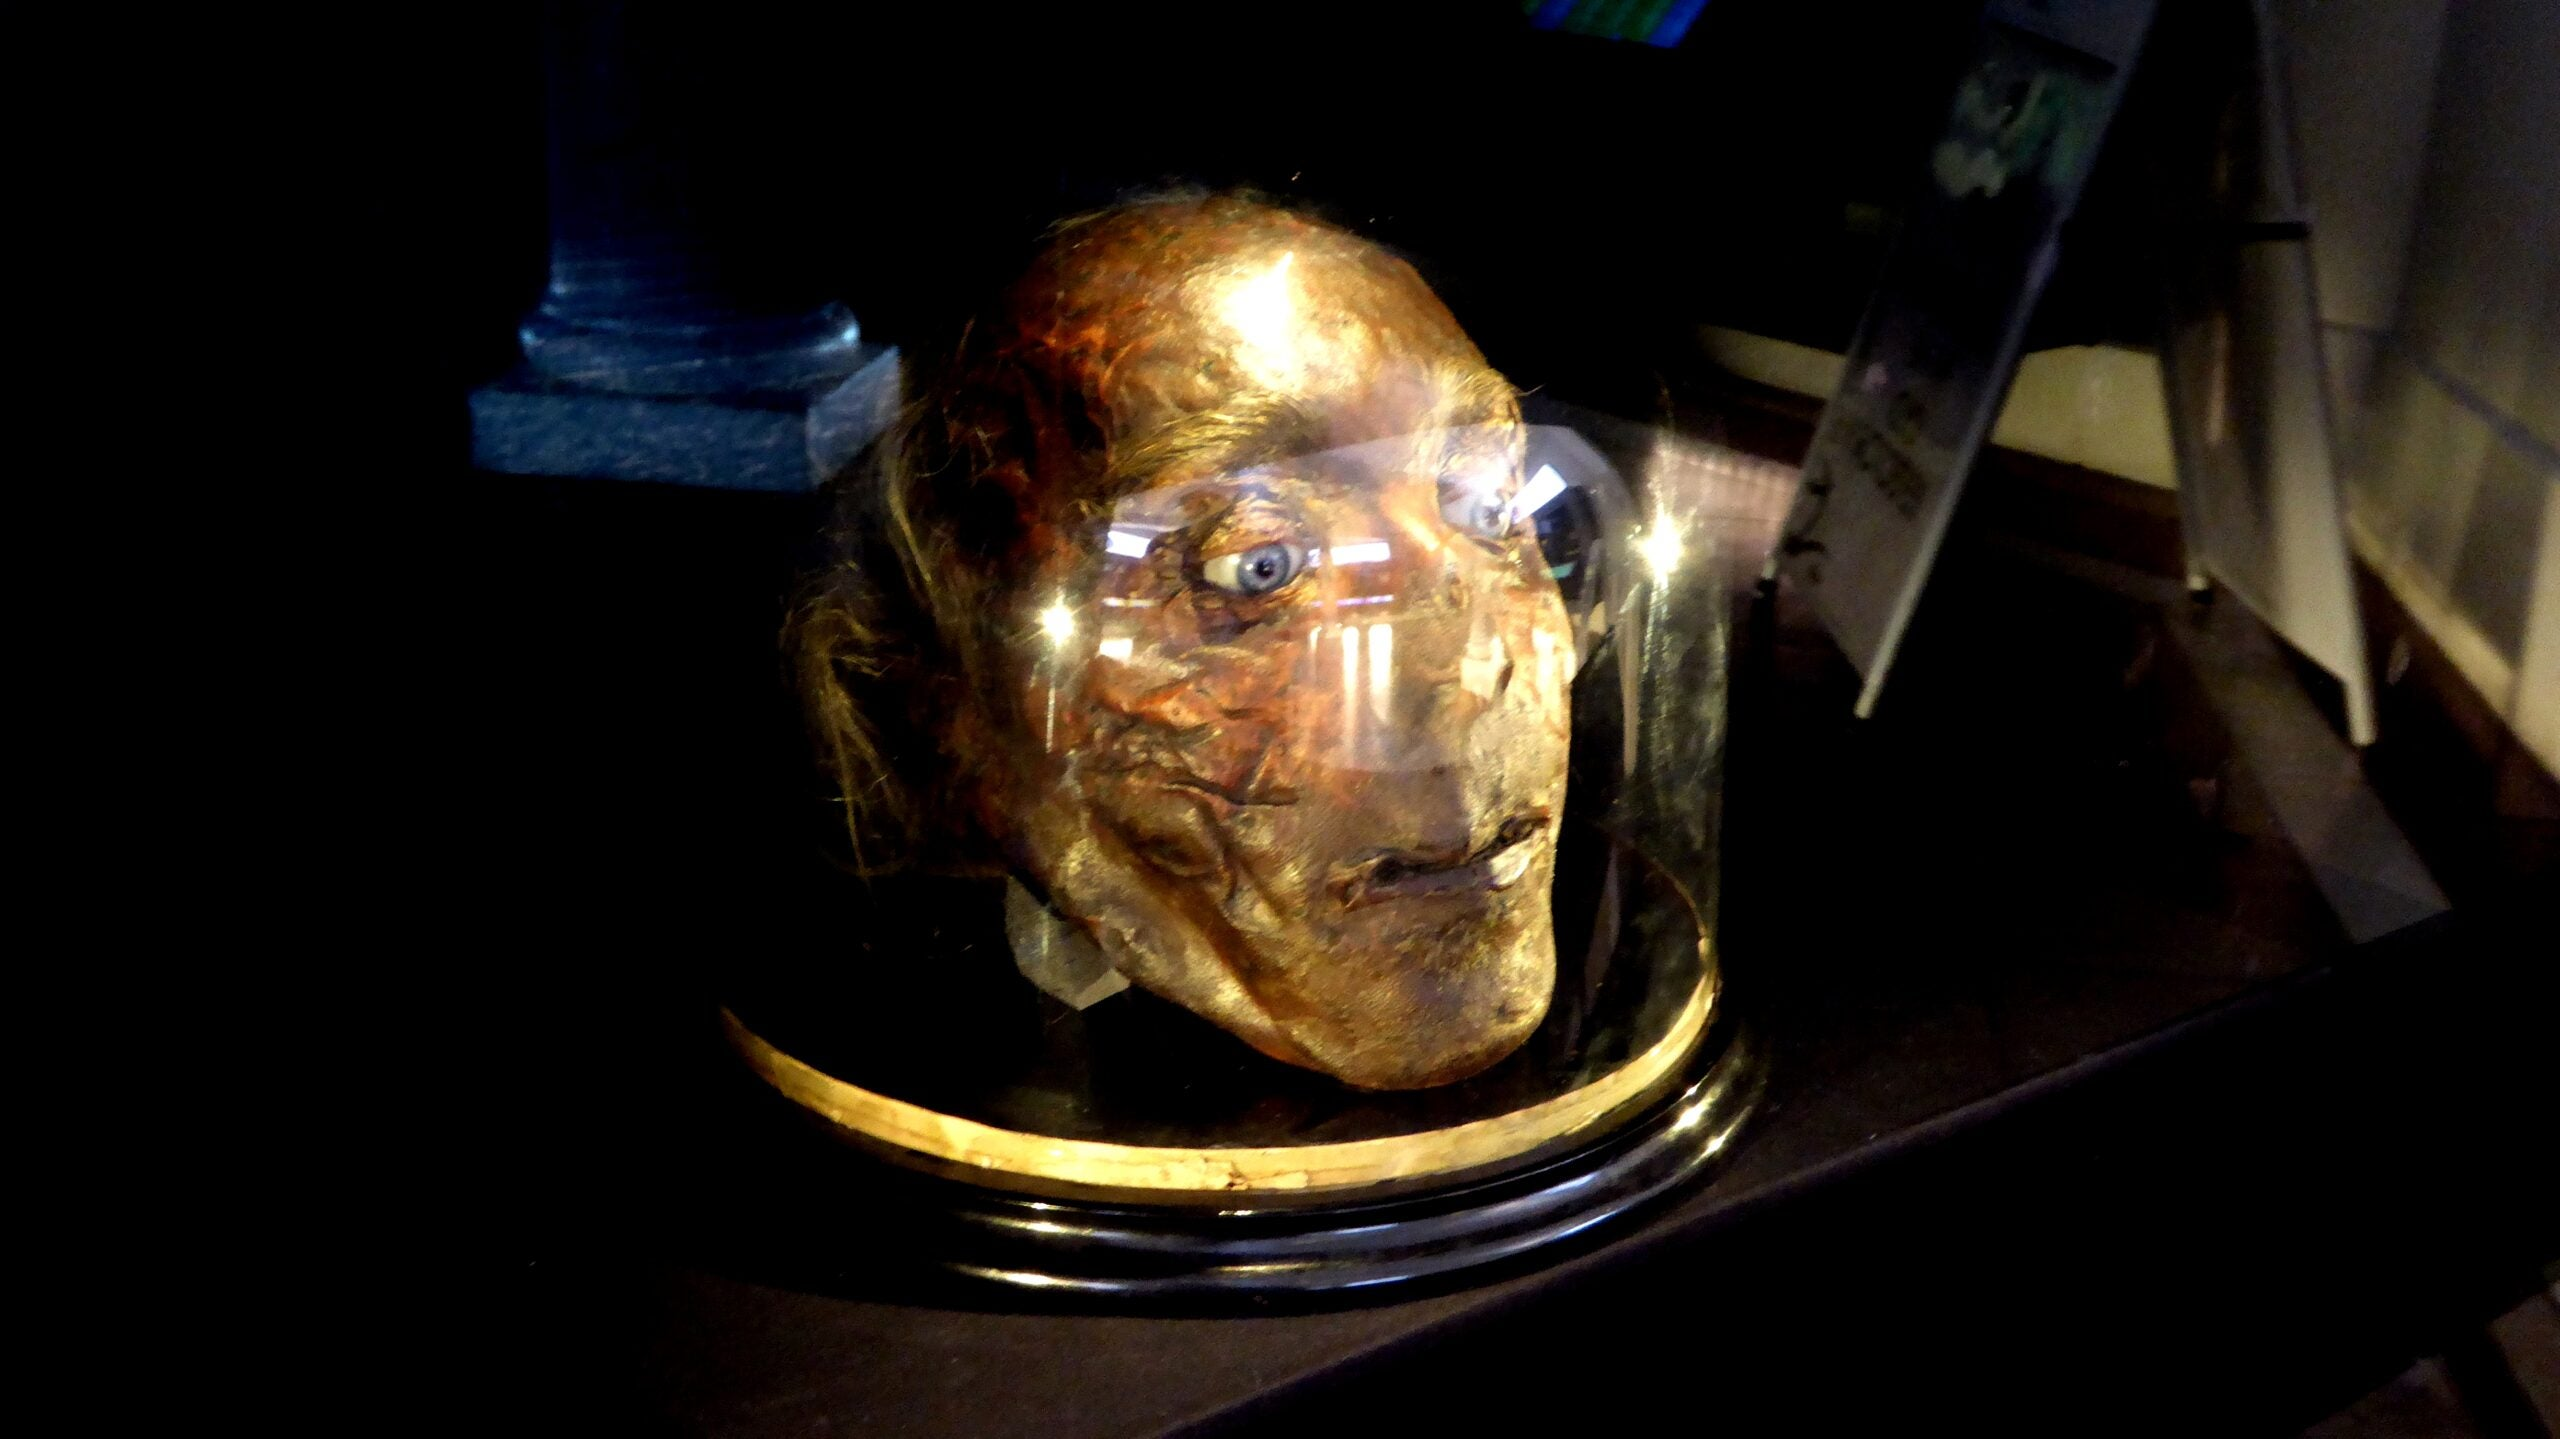 The mummified, severed head of English philosopher Jeremy Bentham